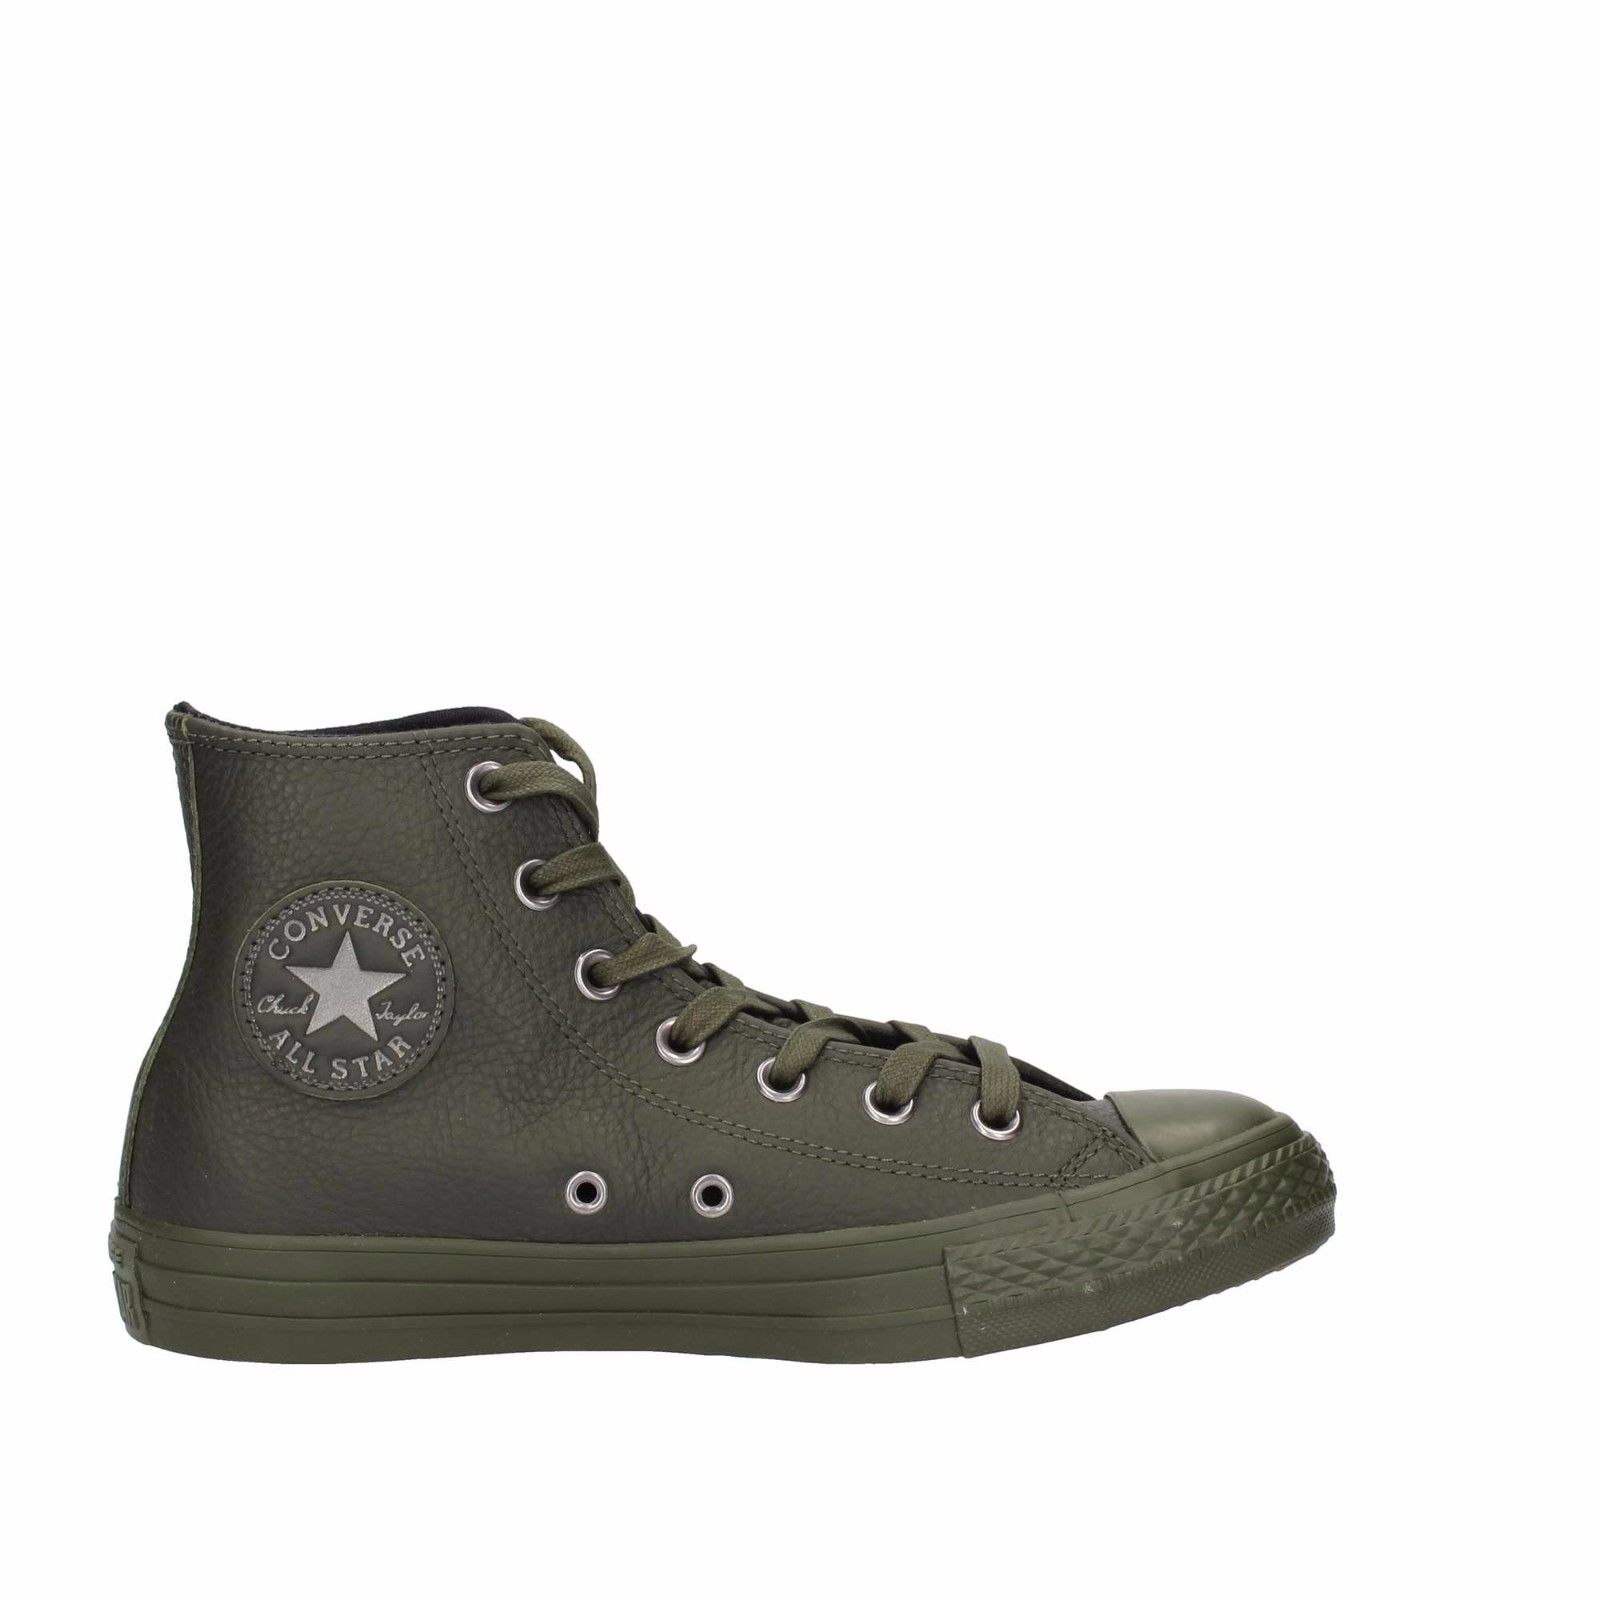 SCARPE SNEAKERS UOMO CONVERSE ALL STAR ORIGINAL CT HI 155132C PELLE SHOES NEW